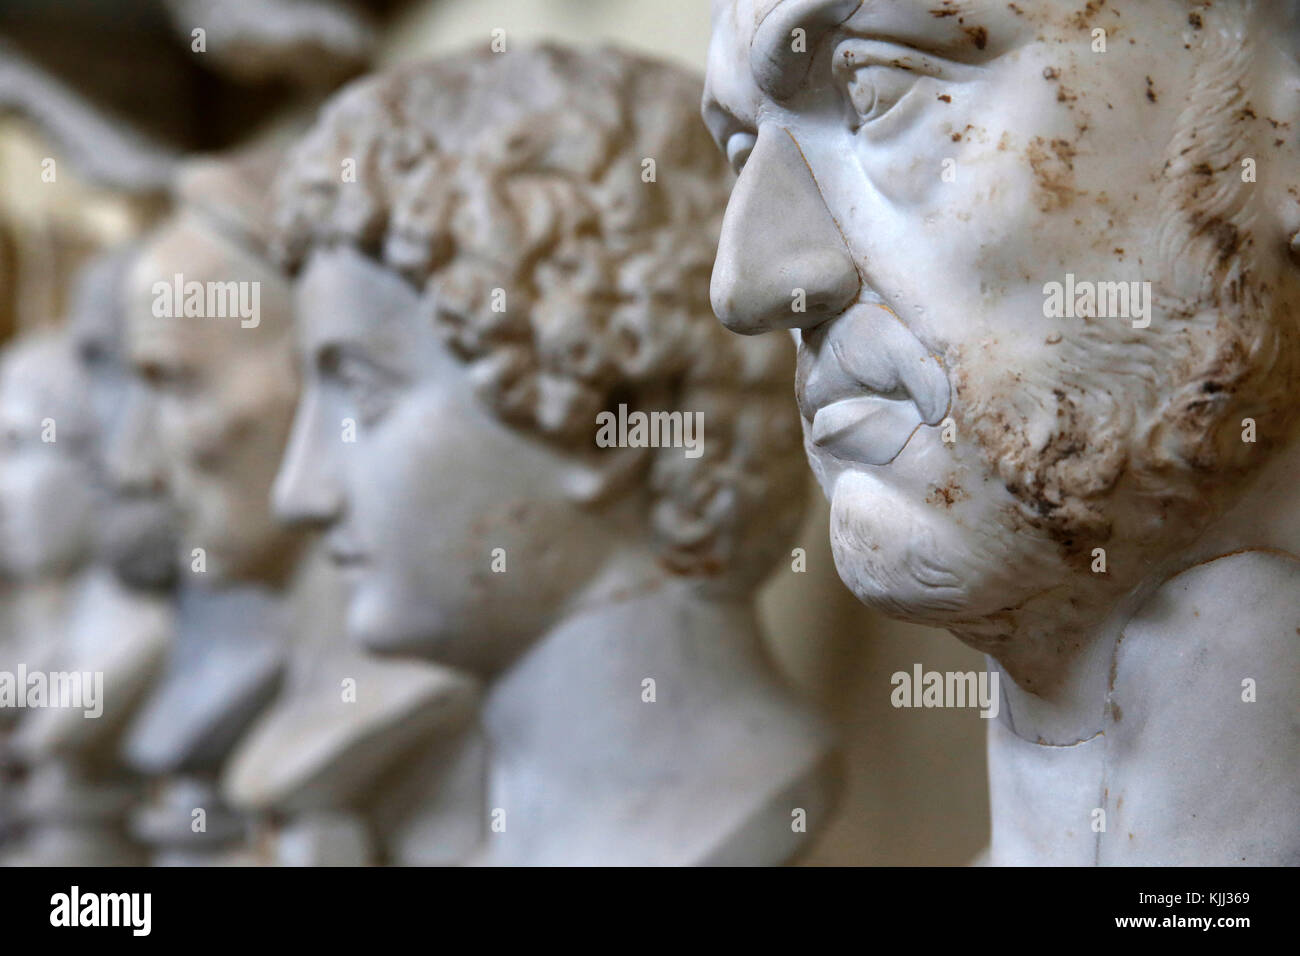 Vatican museums, Rome. Chiaramonti museum. Busts Italy. - Stock Image